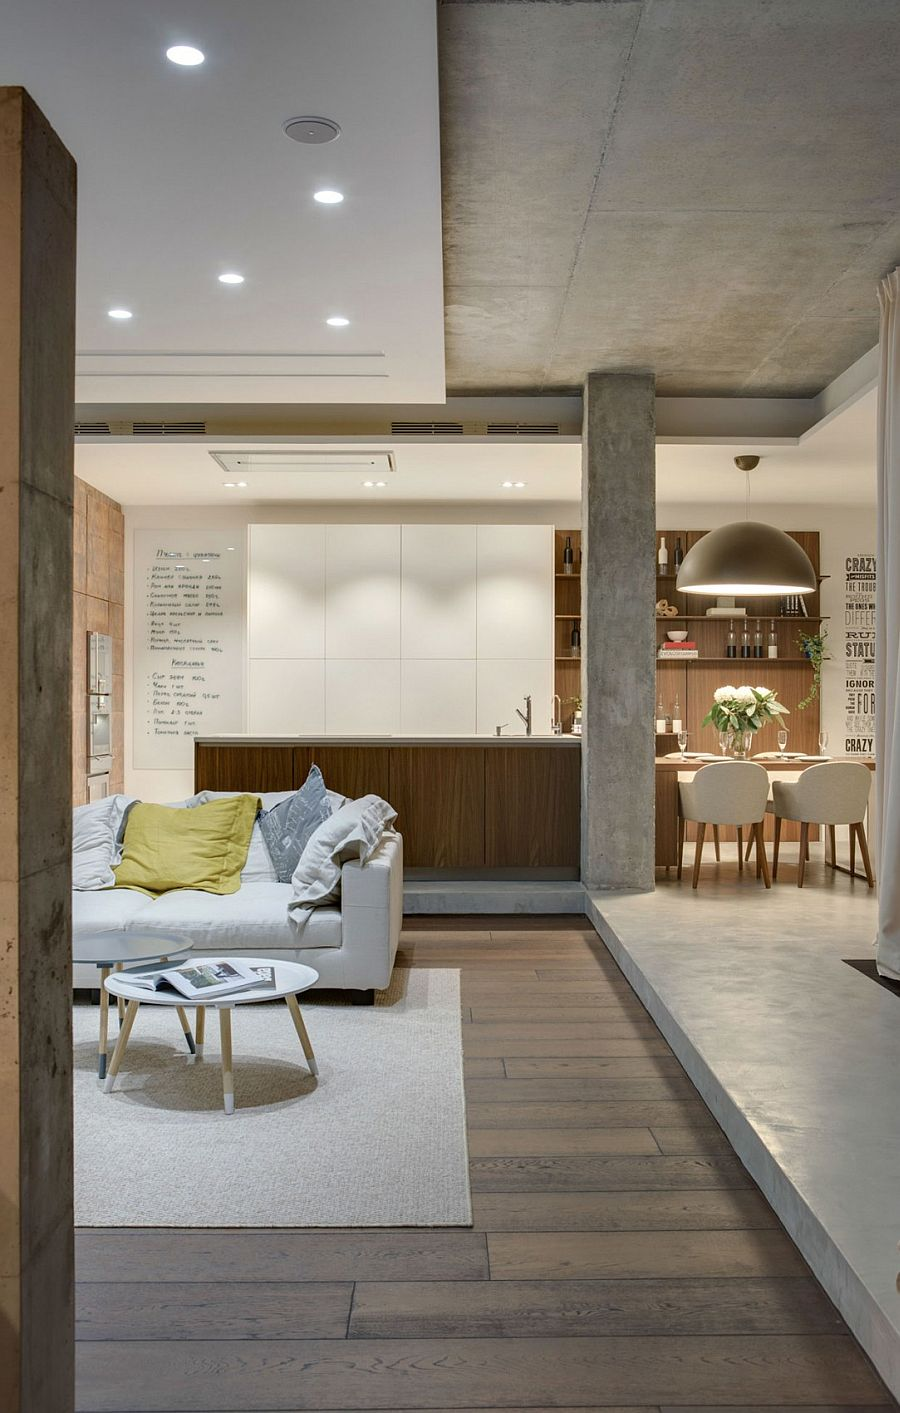 Expoxed concrete gives the Odessa Apartment an industrial touch